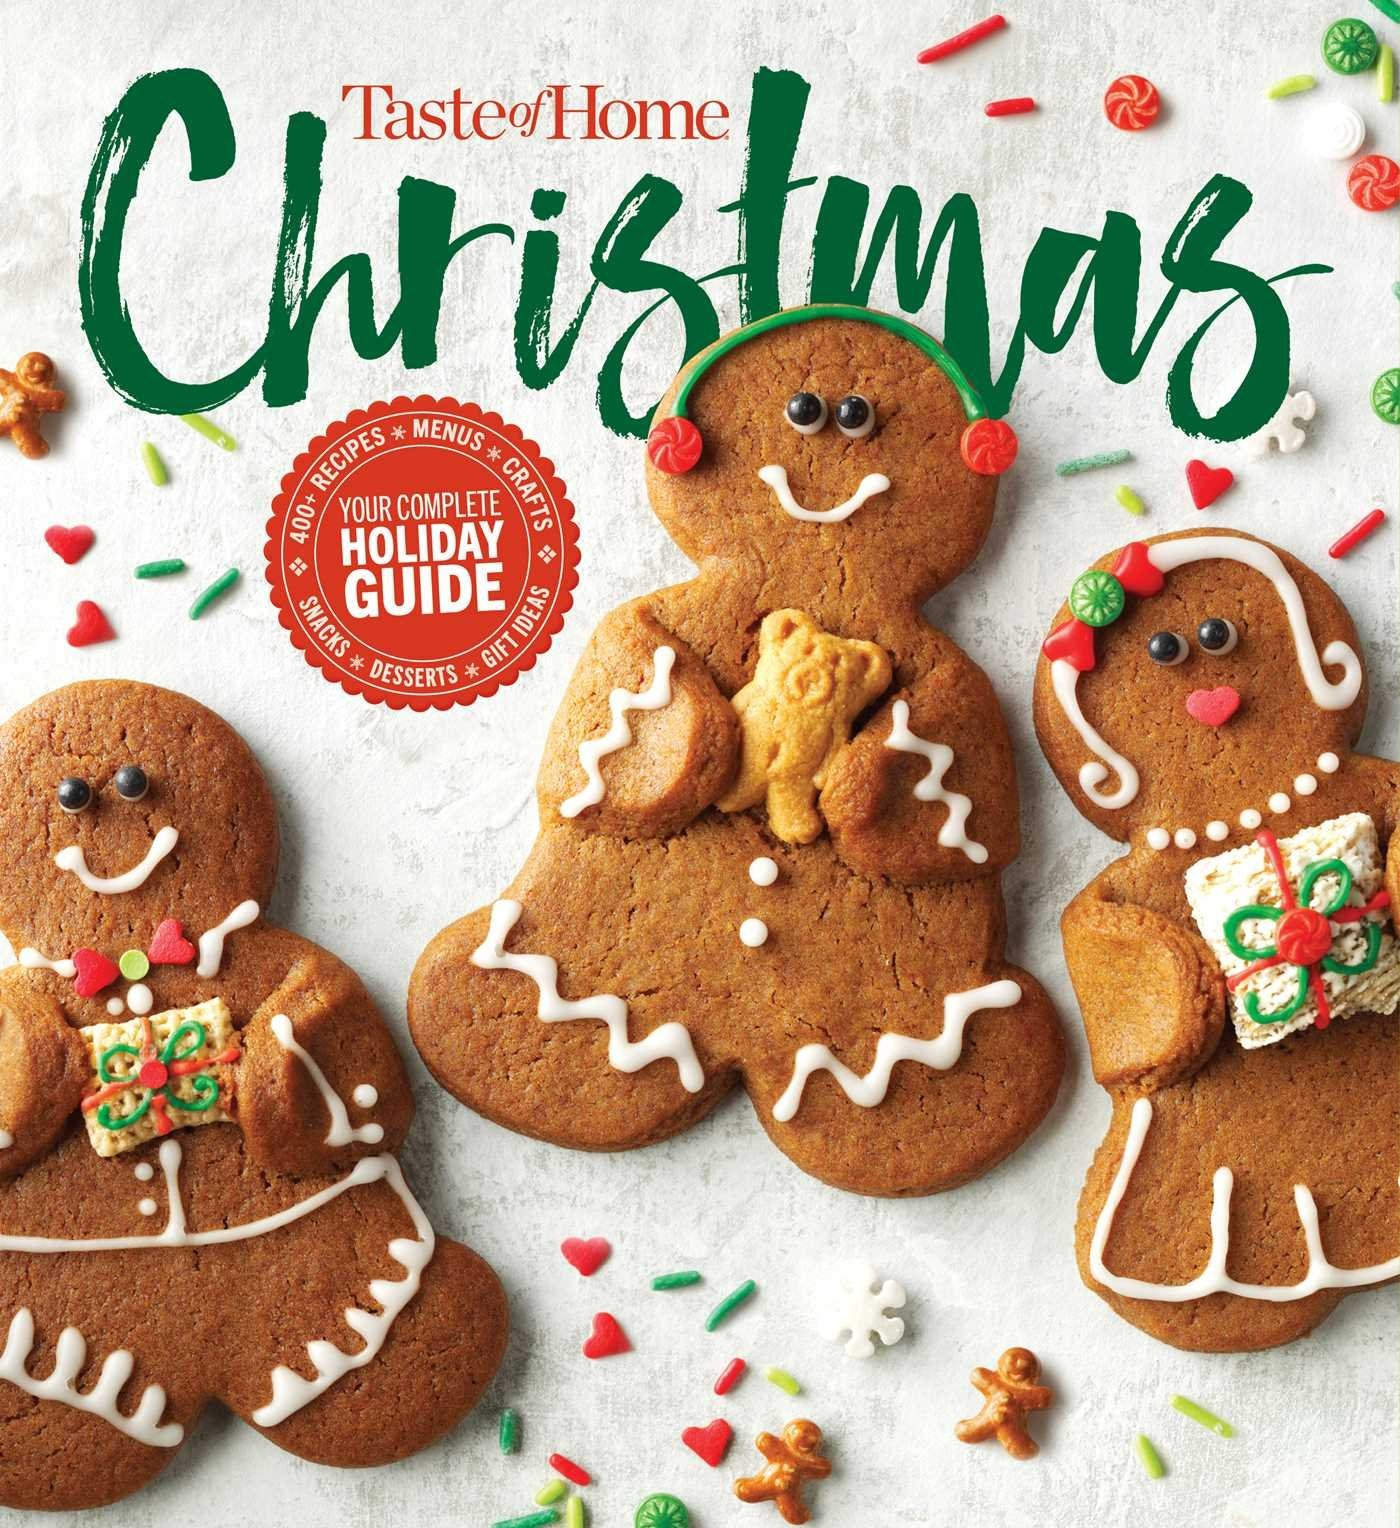 Taste Of Home Christmas 2e 350 Recipes Crafts Ideas For Your Most Magical Holiday Yet Editors At Taste Of Home 9781617657641 Amazon Com Books